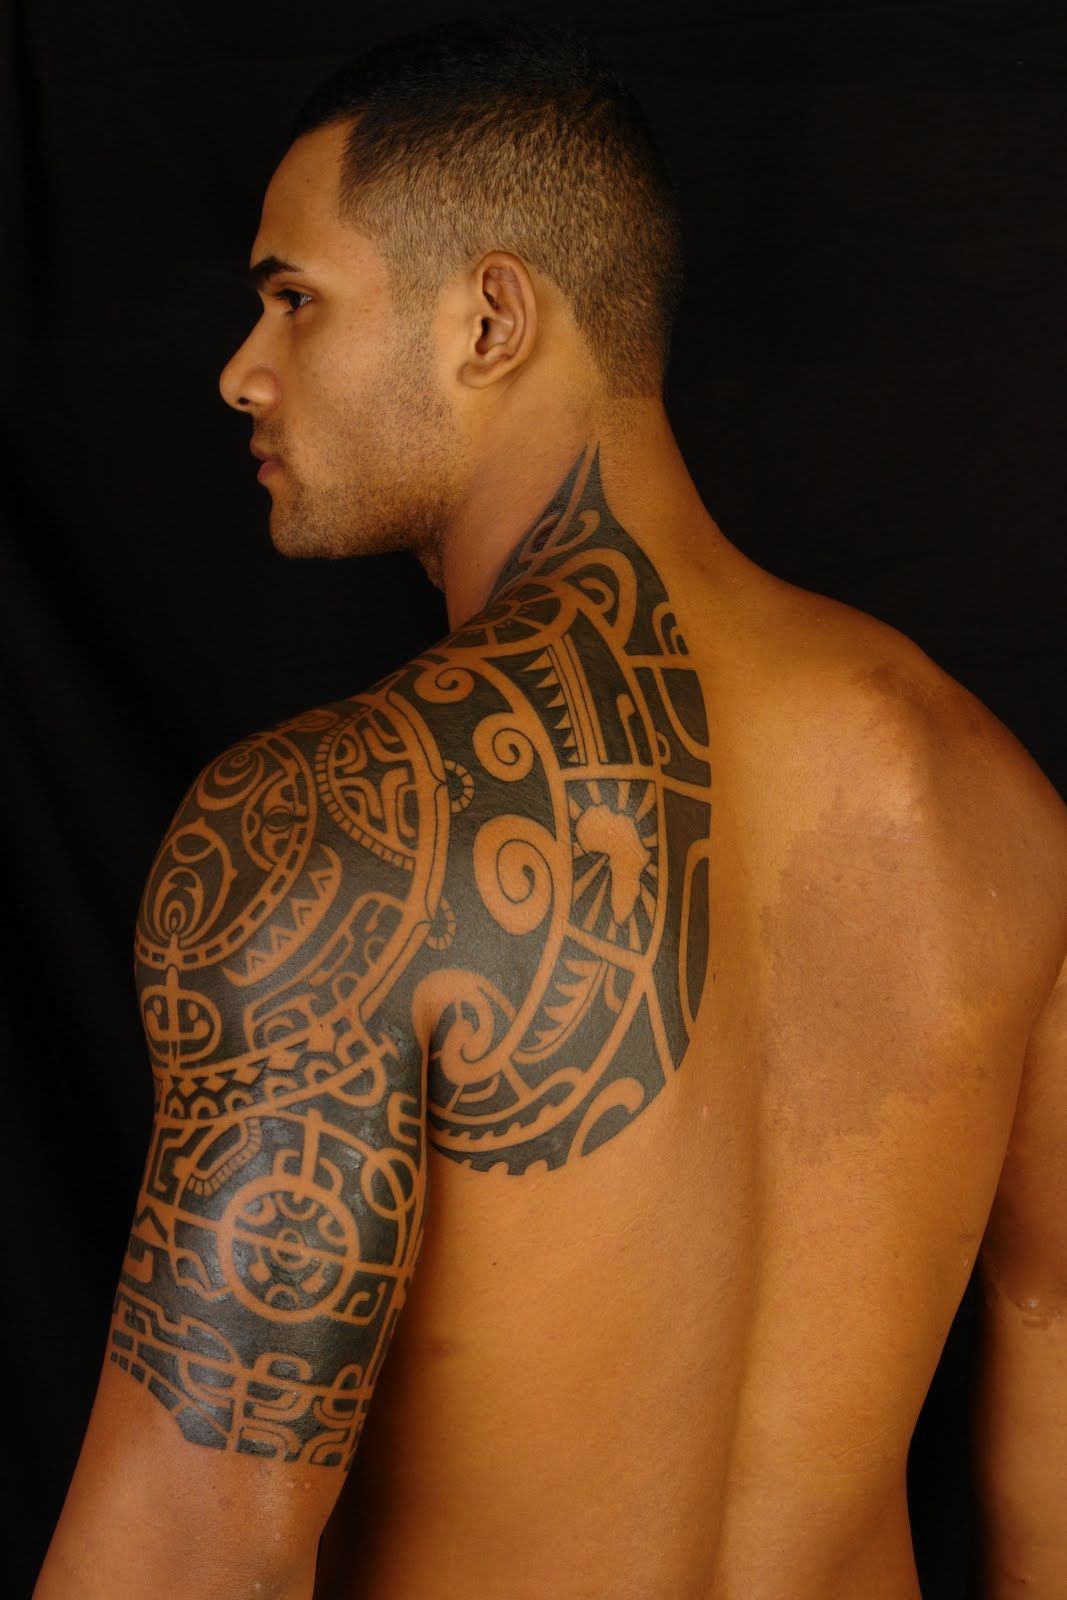 Tattoo Styles For Men And Women Dwayne Johnson The Rock Tattoo